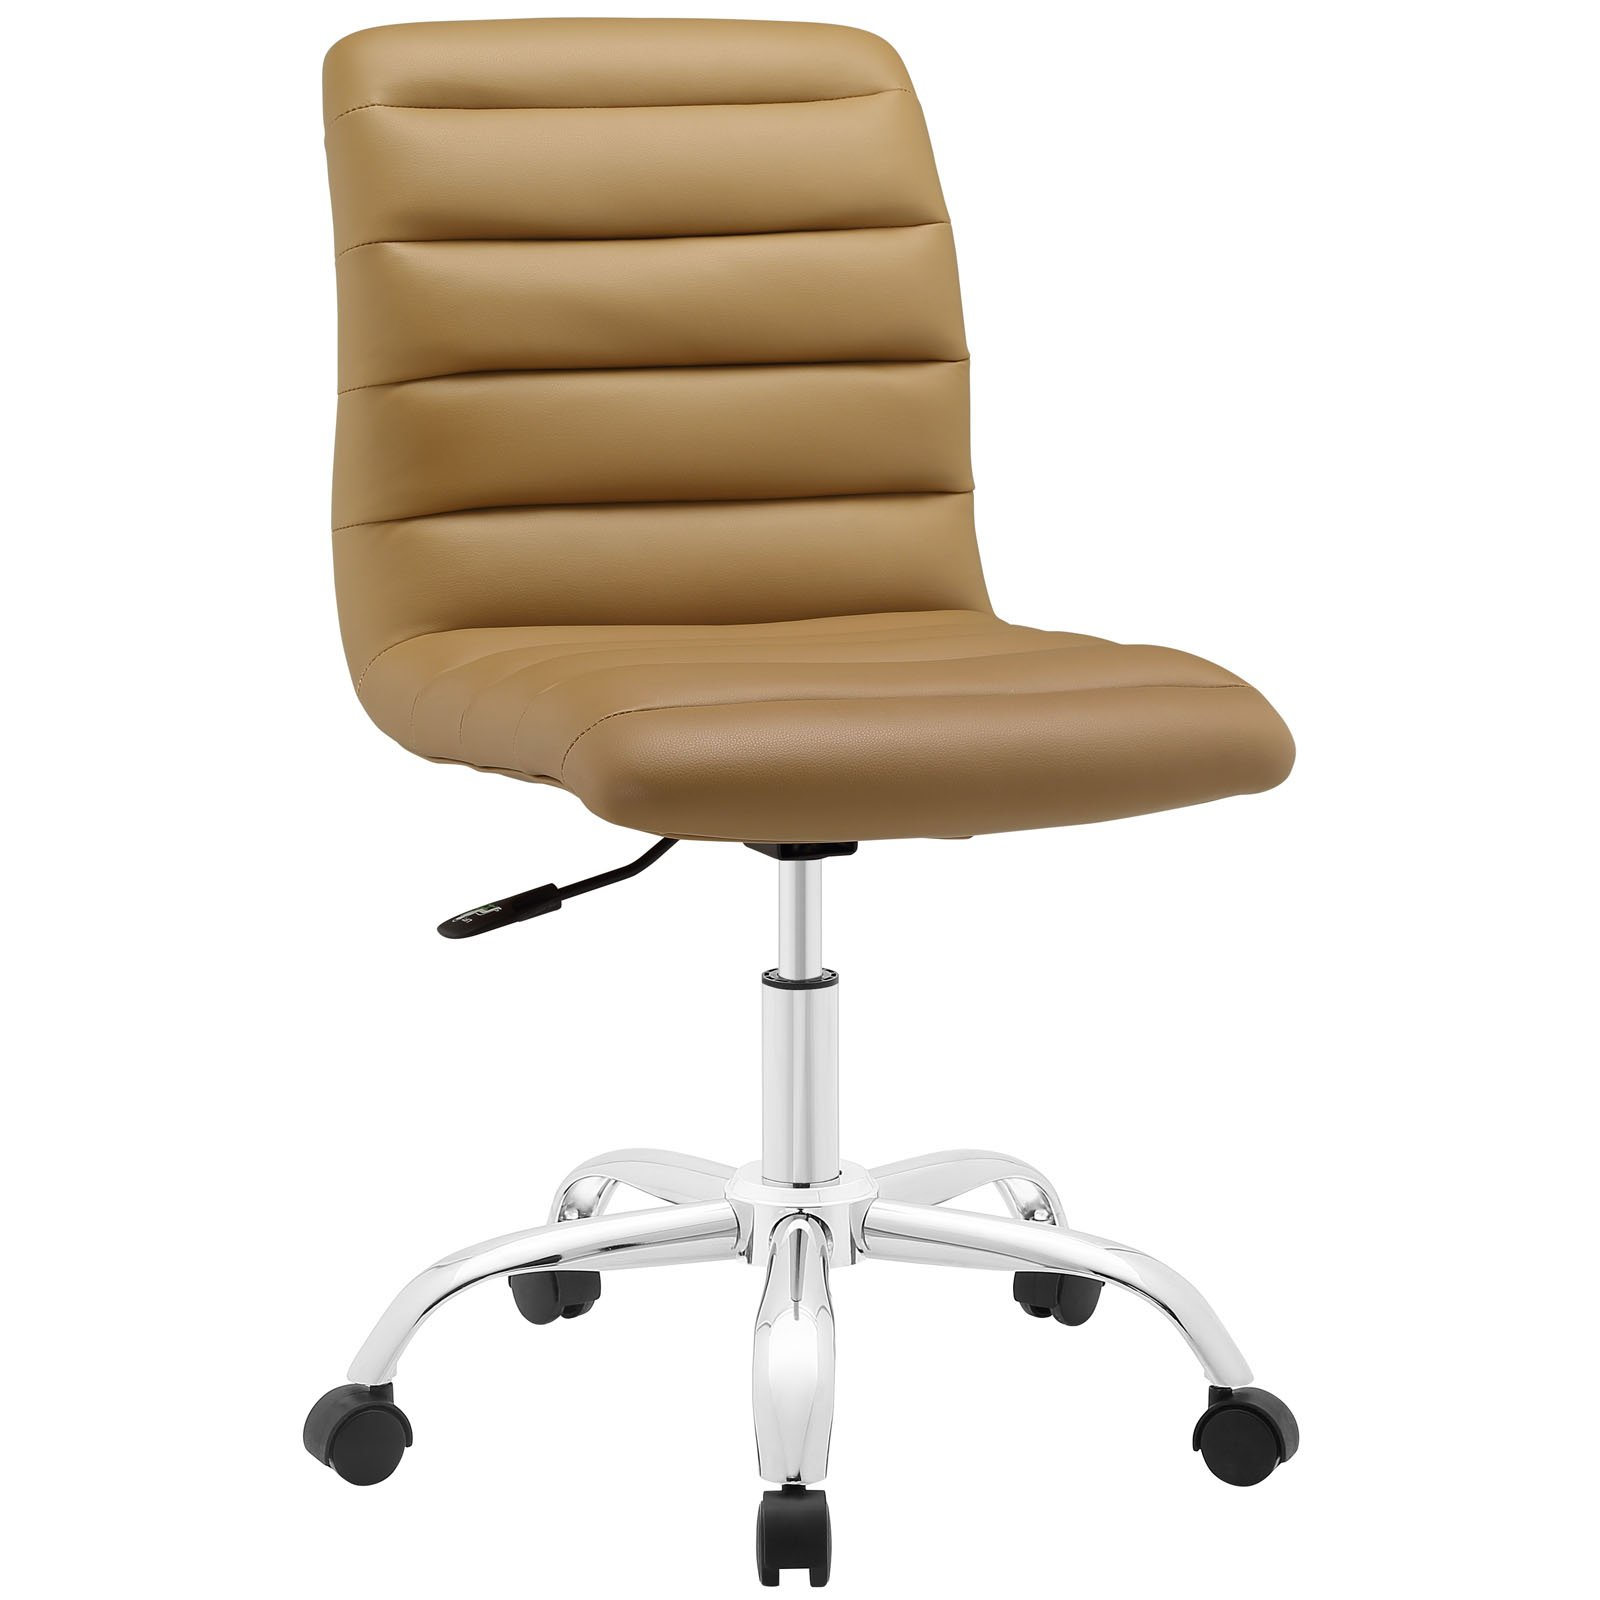 Modway Ripple Mid Back Office Chair, Tan by Modway